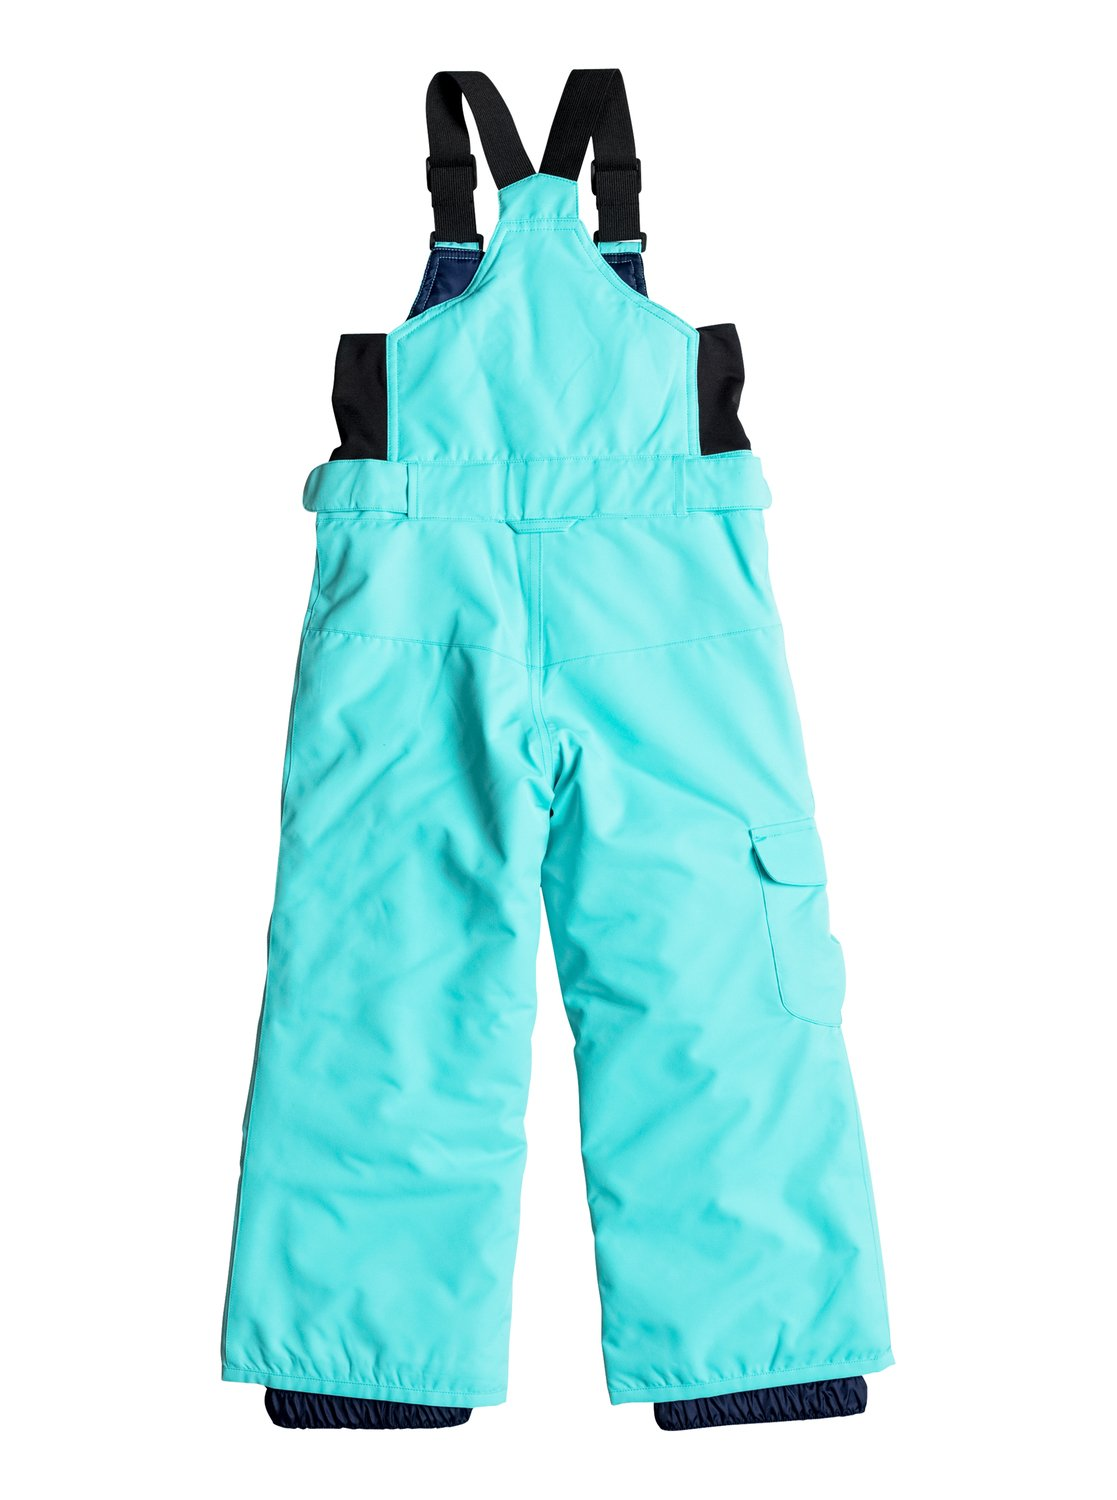 Shop for Kids' Snow Pants at REI - FREE SHIPPING With $50 minimum purchase. Top quality, great selection and expert advice you can trust. % Satisfaction Guarantee. Bailey Insulated Bib Snow Pants - Girls'/Toddler Girls'.